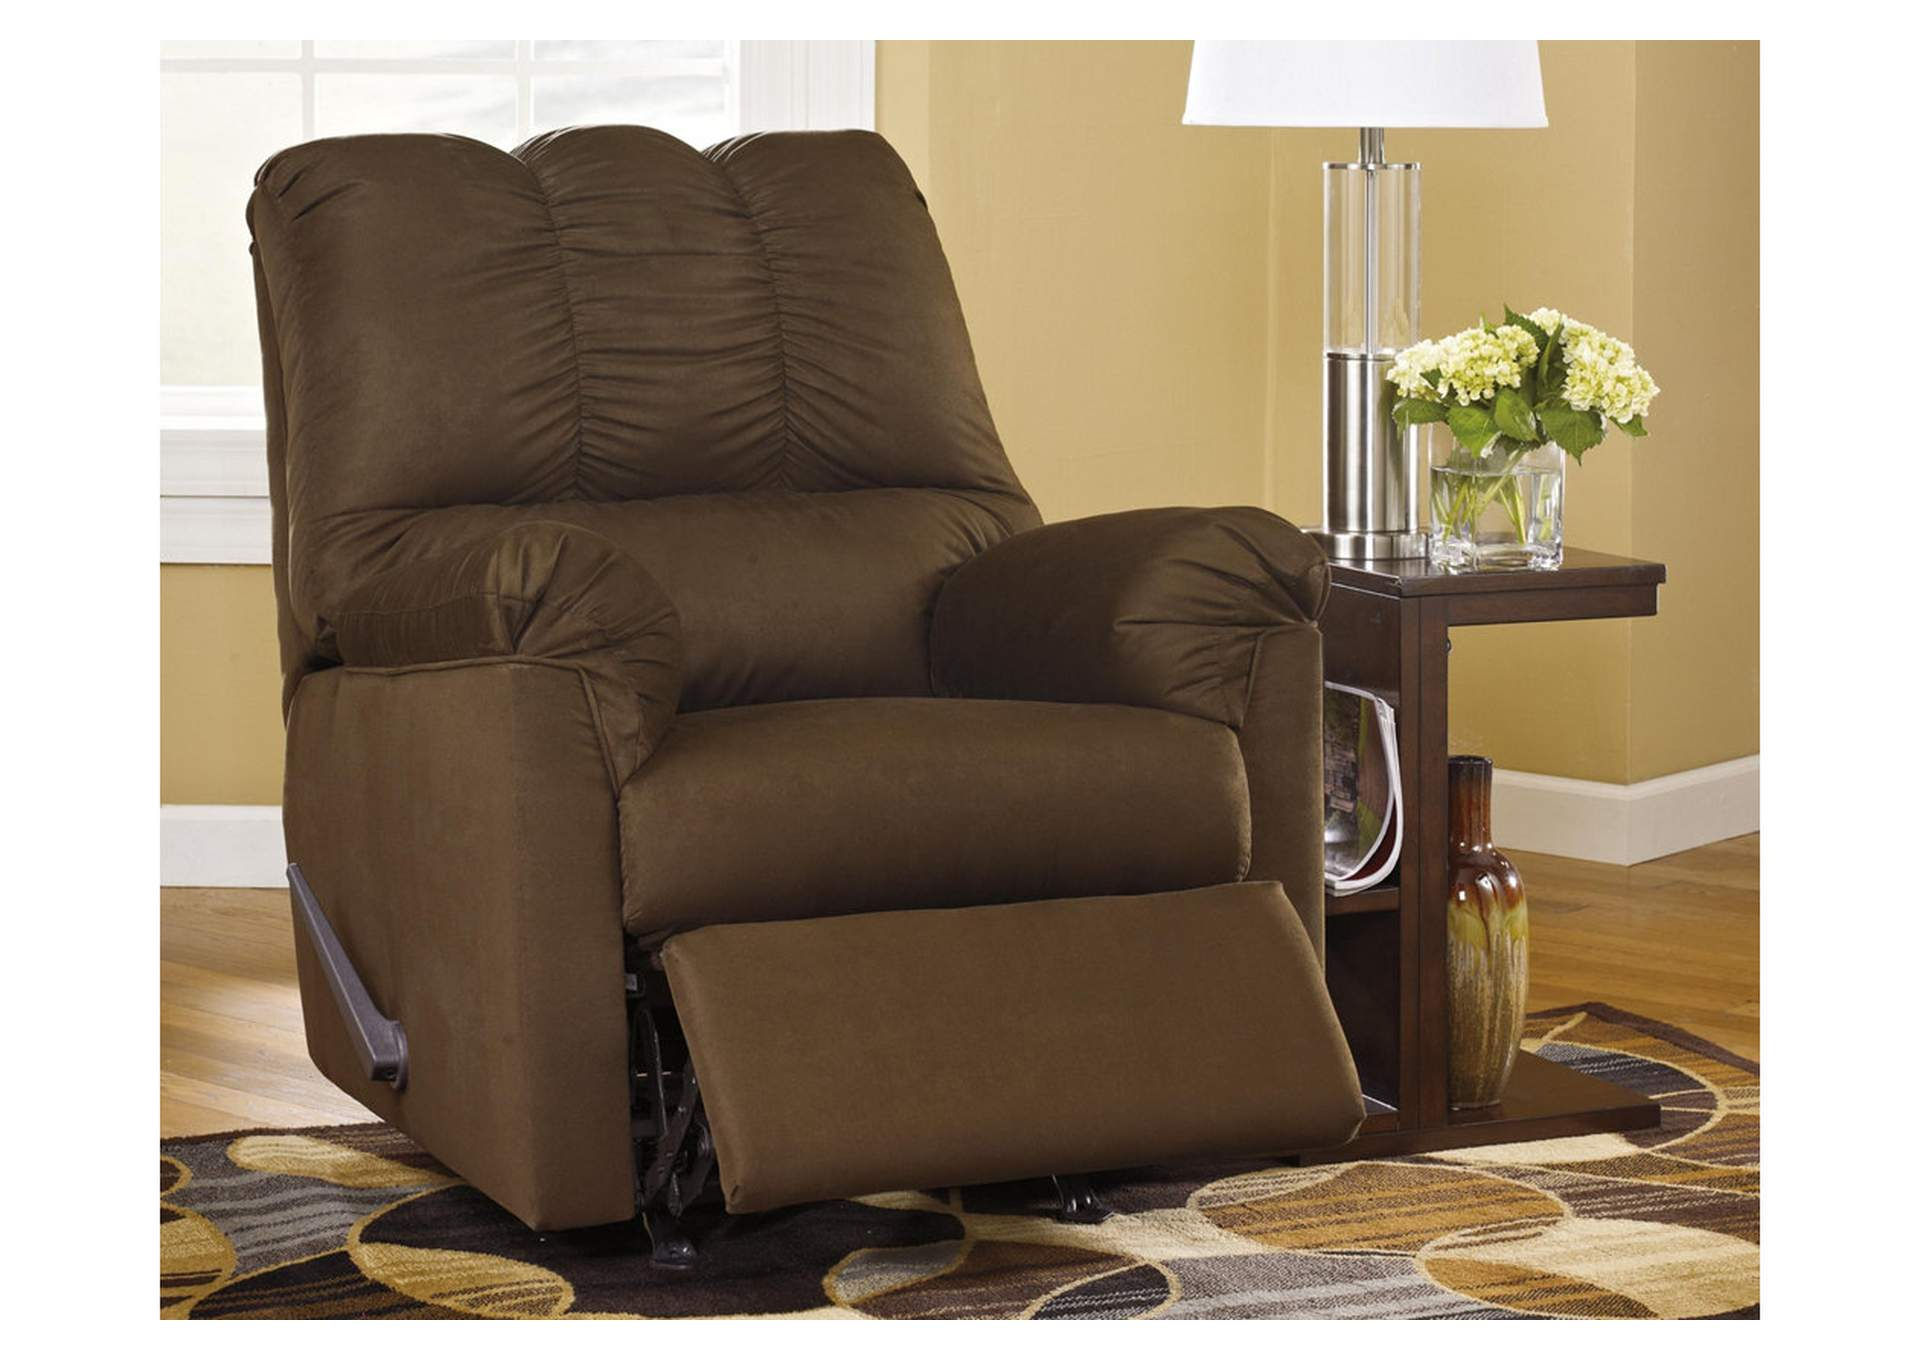 Darcy Cafe Rocker Recliner,Signature Design By Ashley